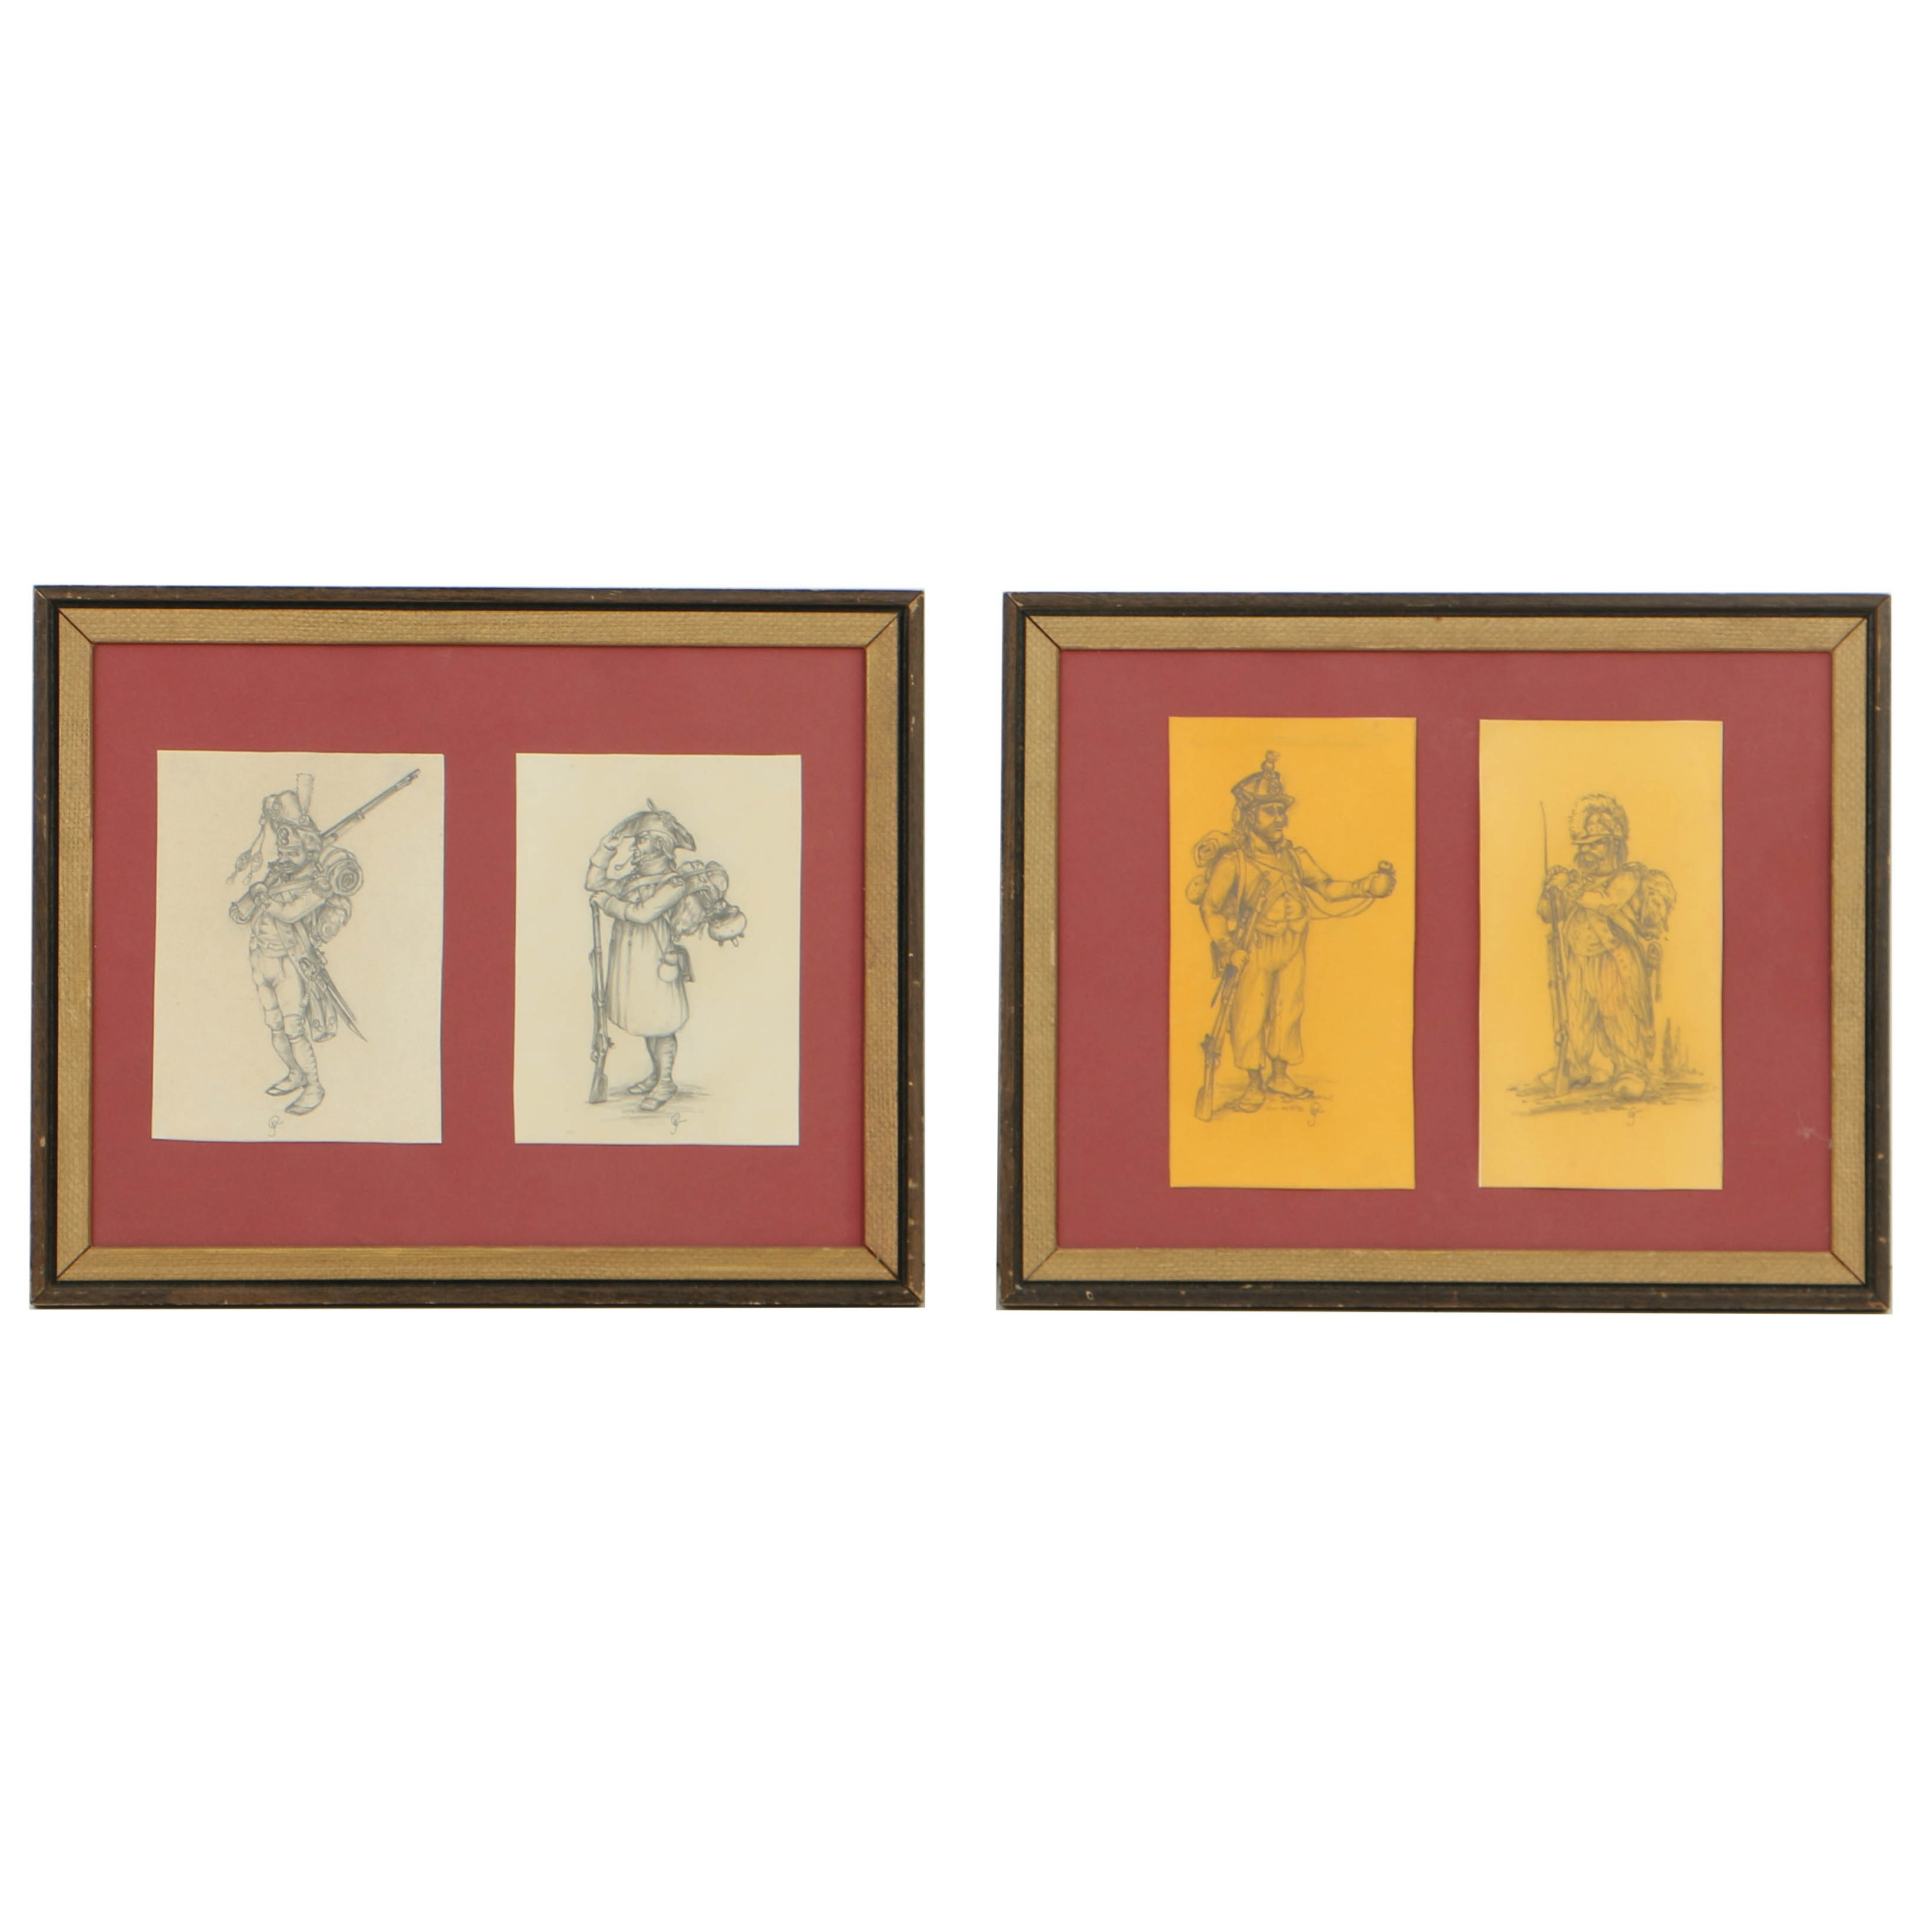 Framed Early 19th Century Graphite Caricatures on Paper of Poilus